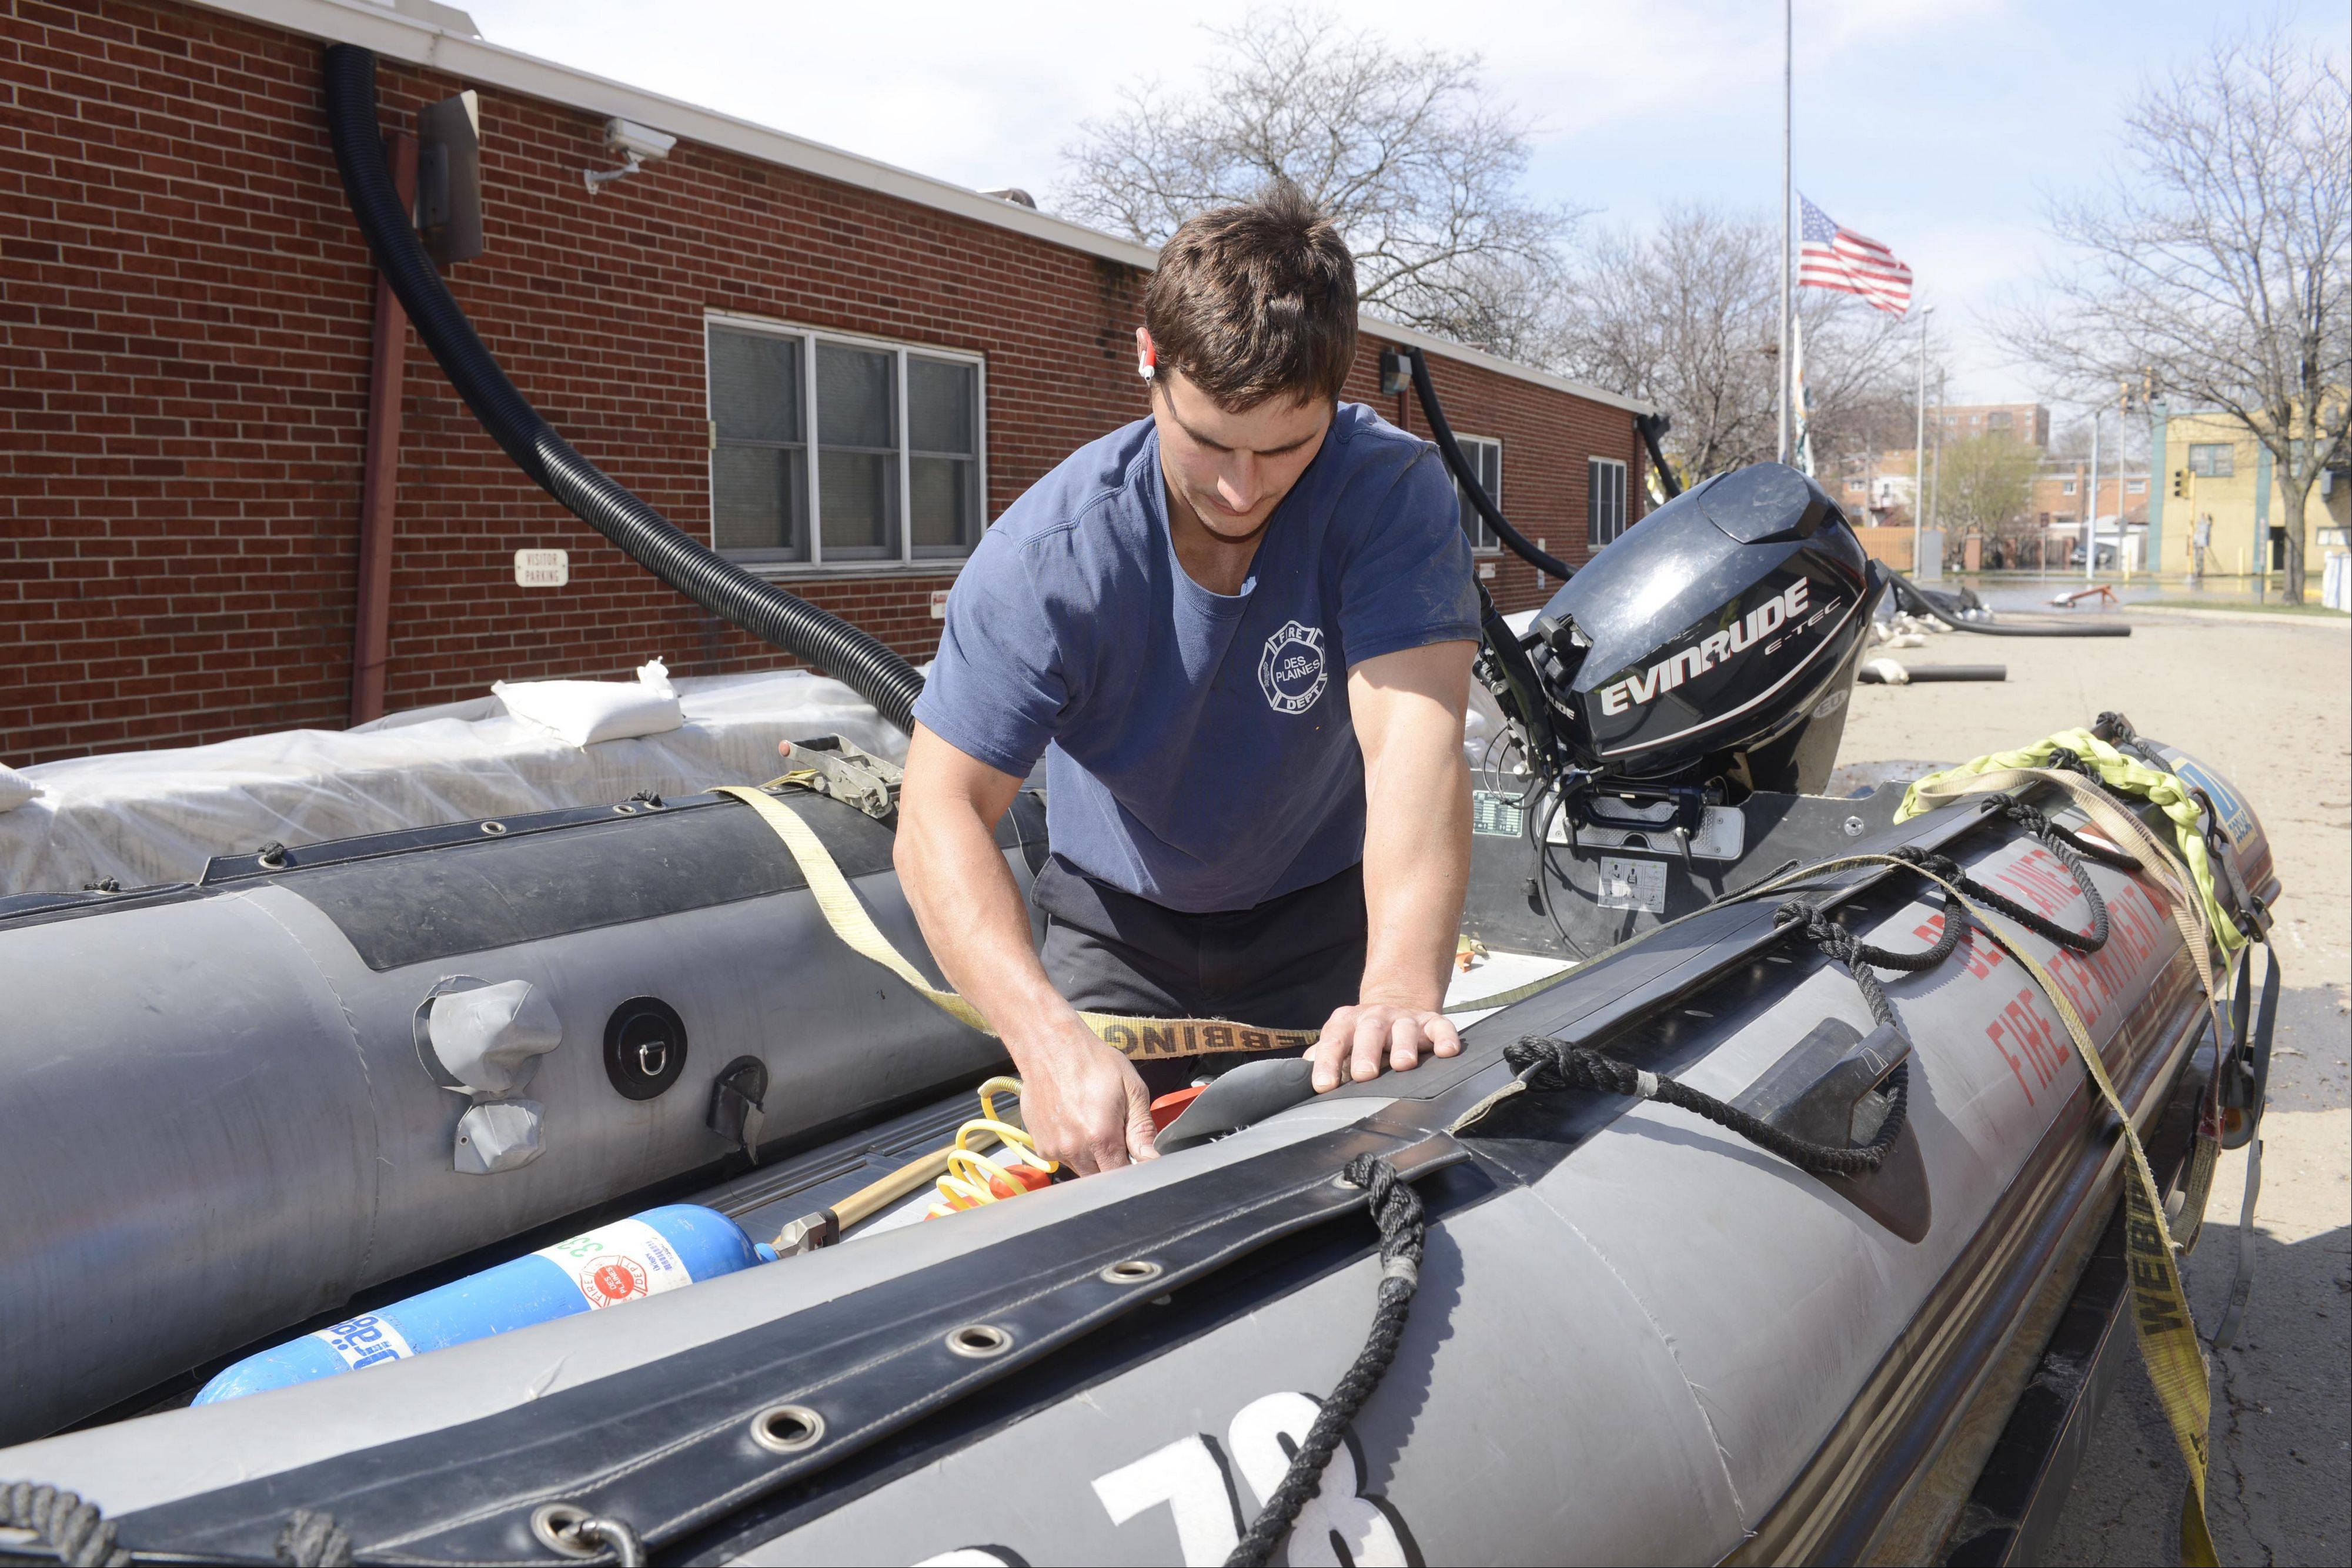 Firefighter/paramedic Ryan Petty gets the department's rescue boat ready for action outside the station at the intersection of Rive and Rand roads in Des Plaines Monday.